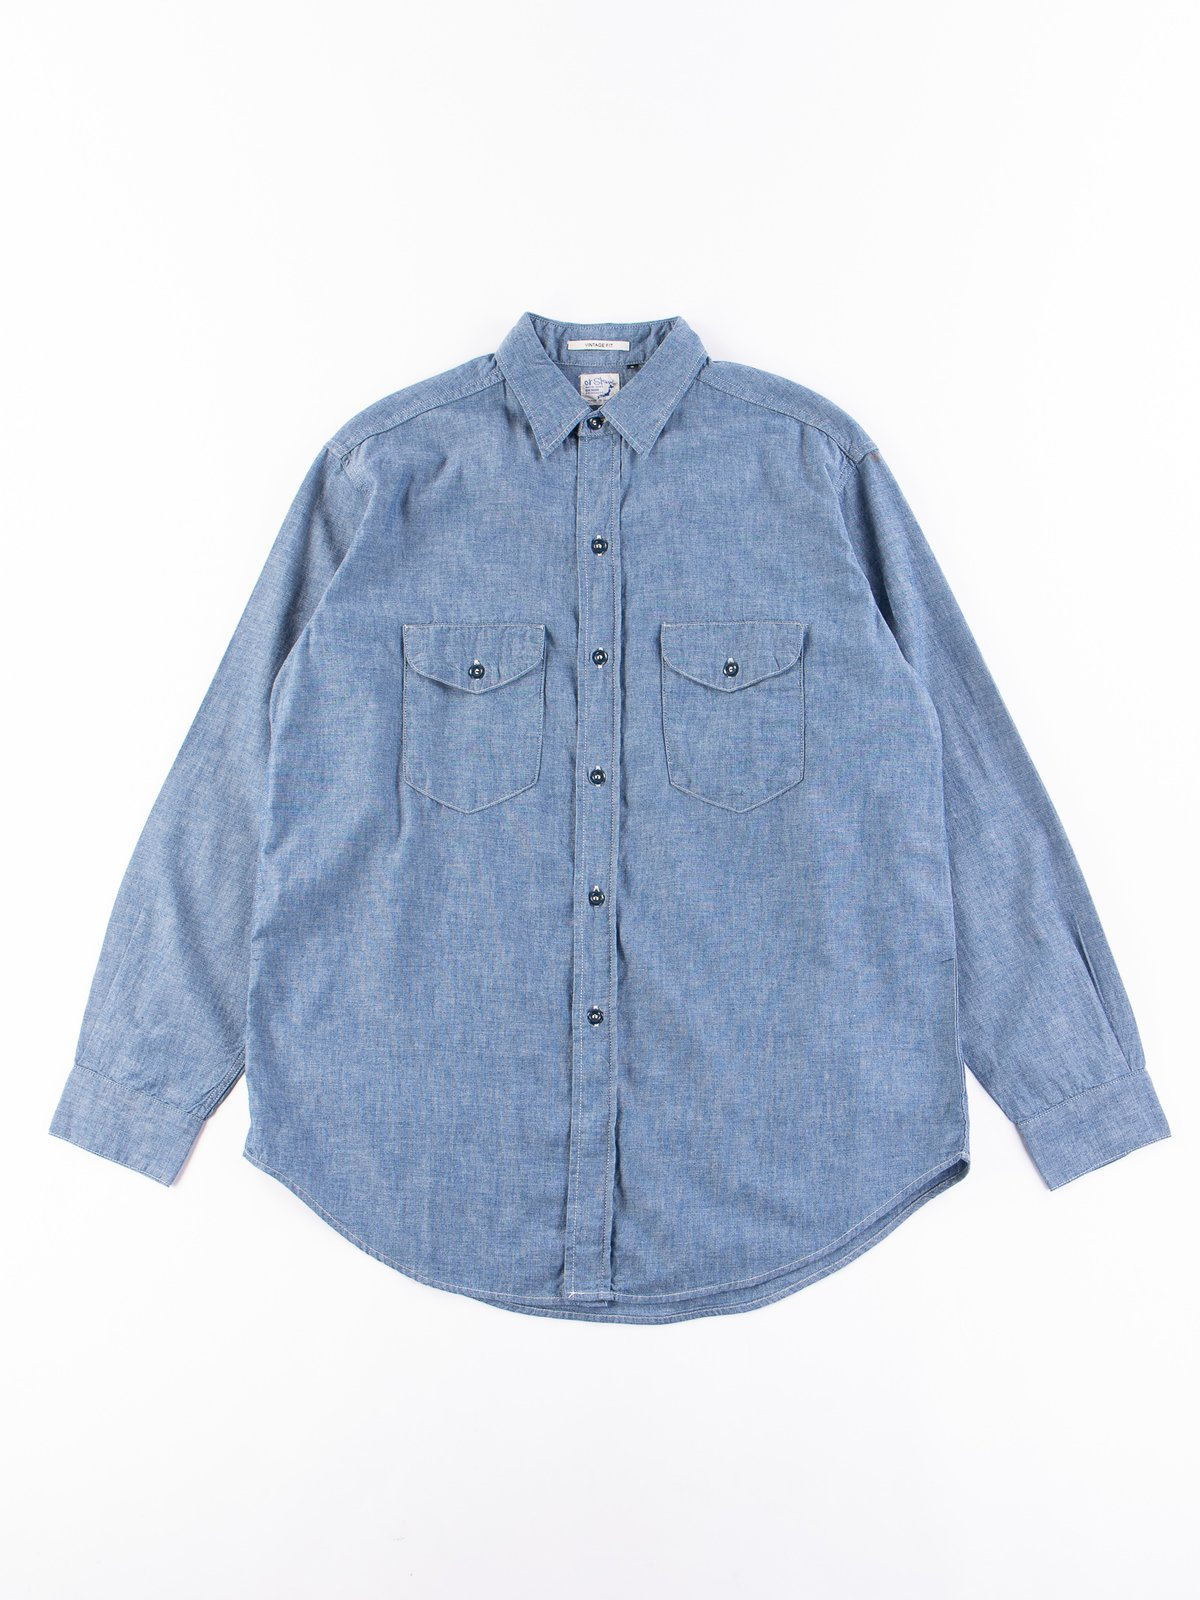 Blue Chambray Vintage Fit Work Shirt - Image 1